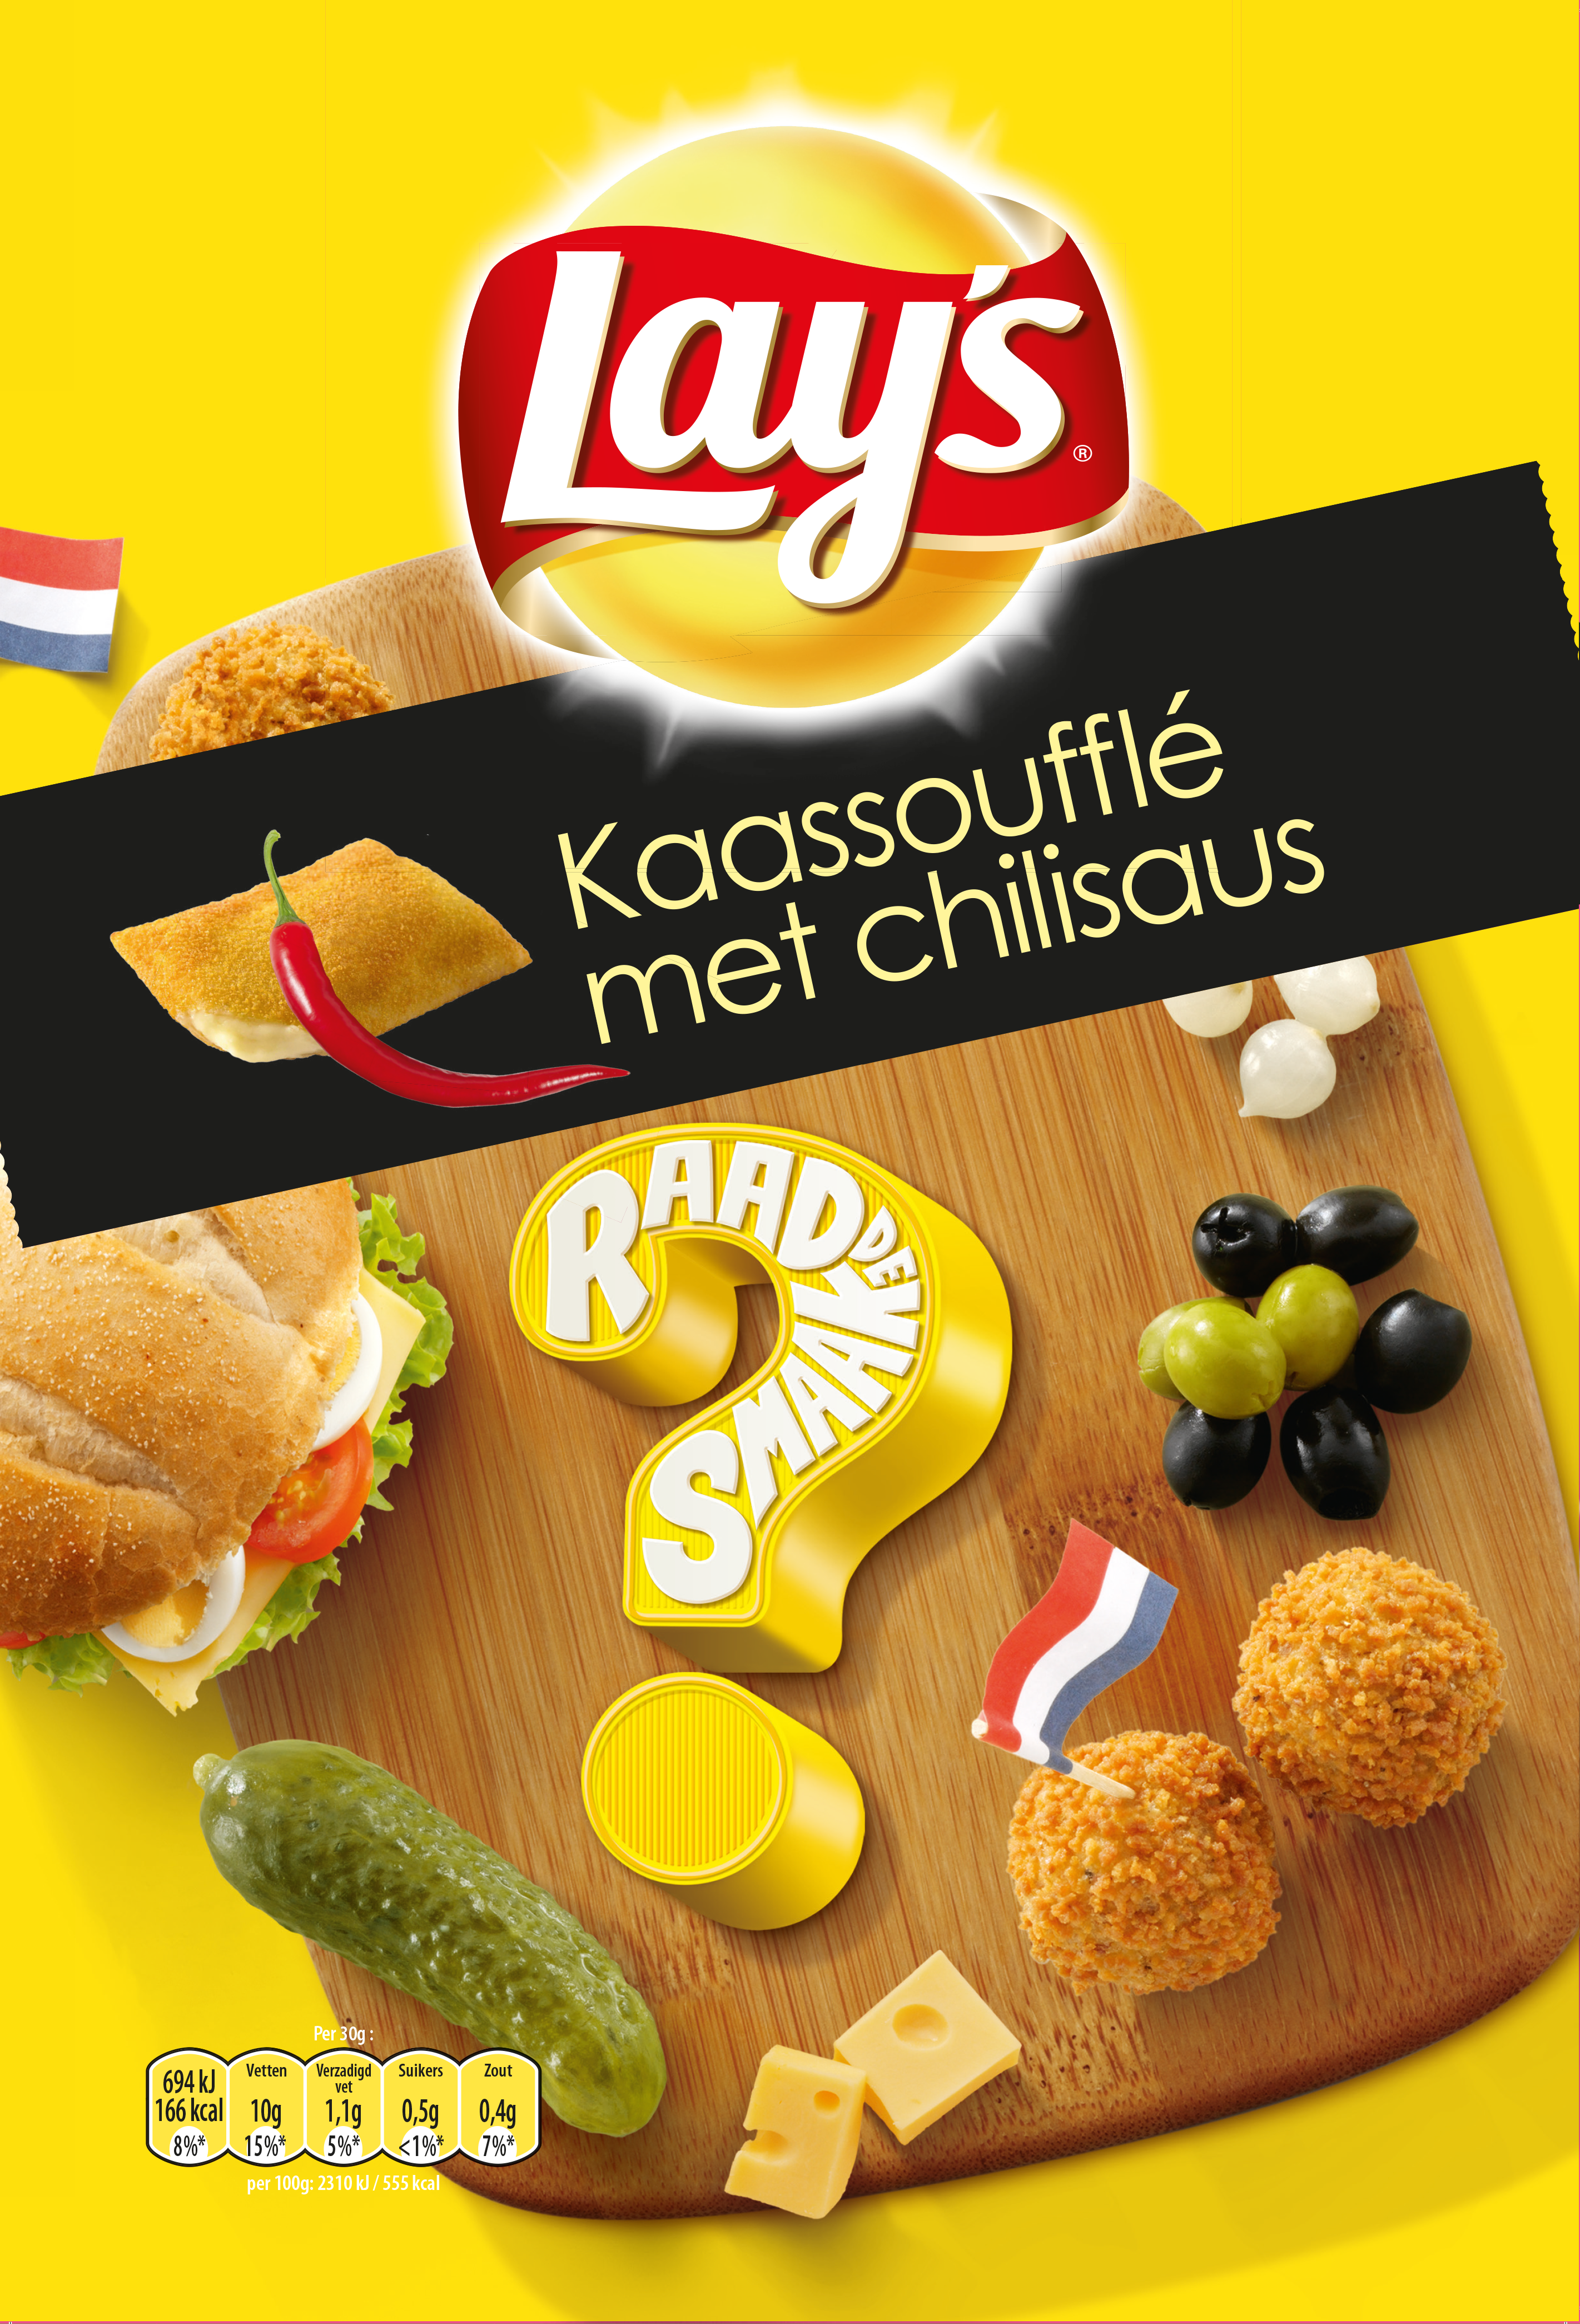 Lays_RdS_Geel